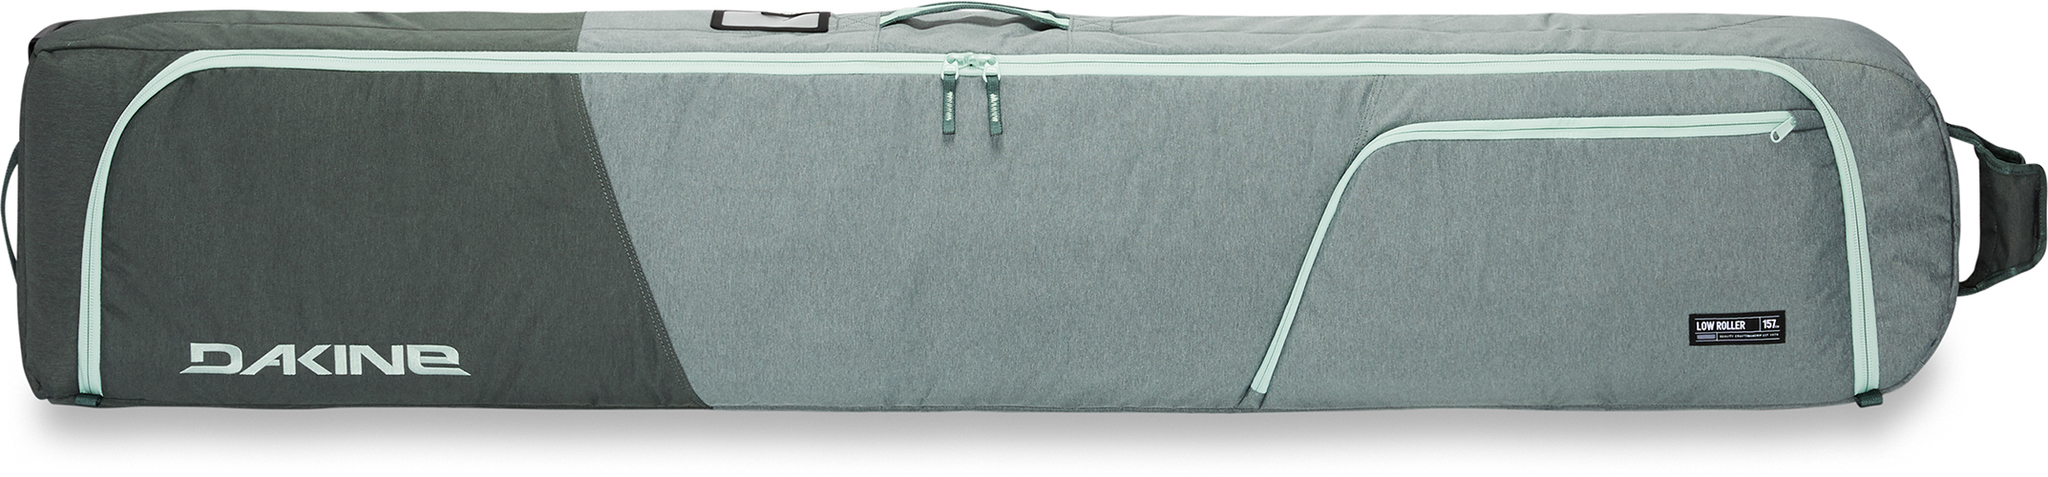 38f4ccb75eb7 Чехол для сноуборда Dakine LOW ROLLER SNOWBOARD BAG 157 BRIGHTON